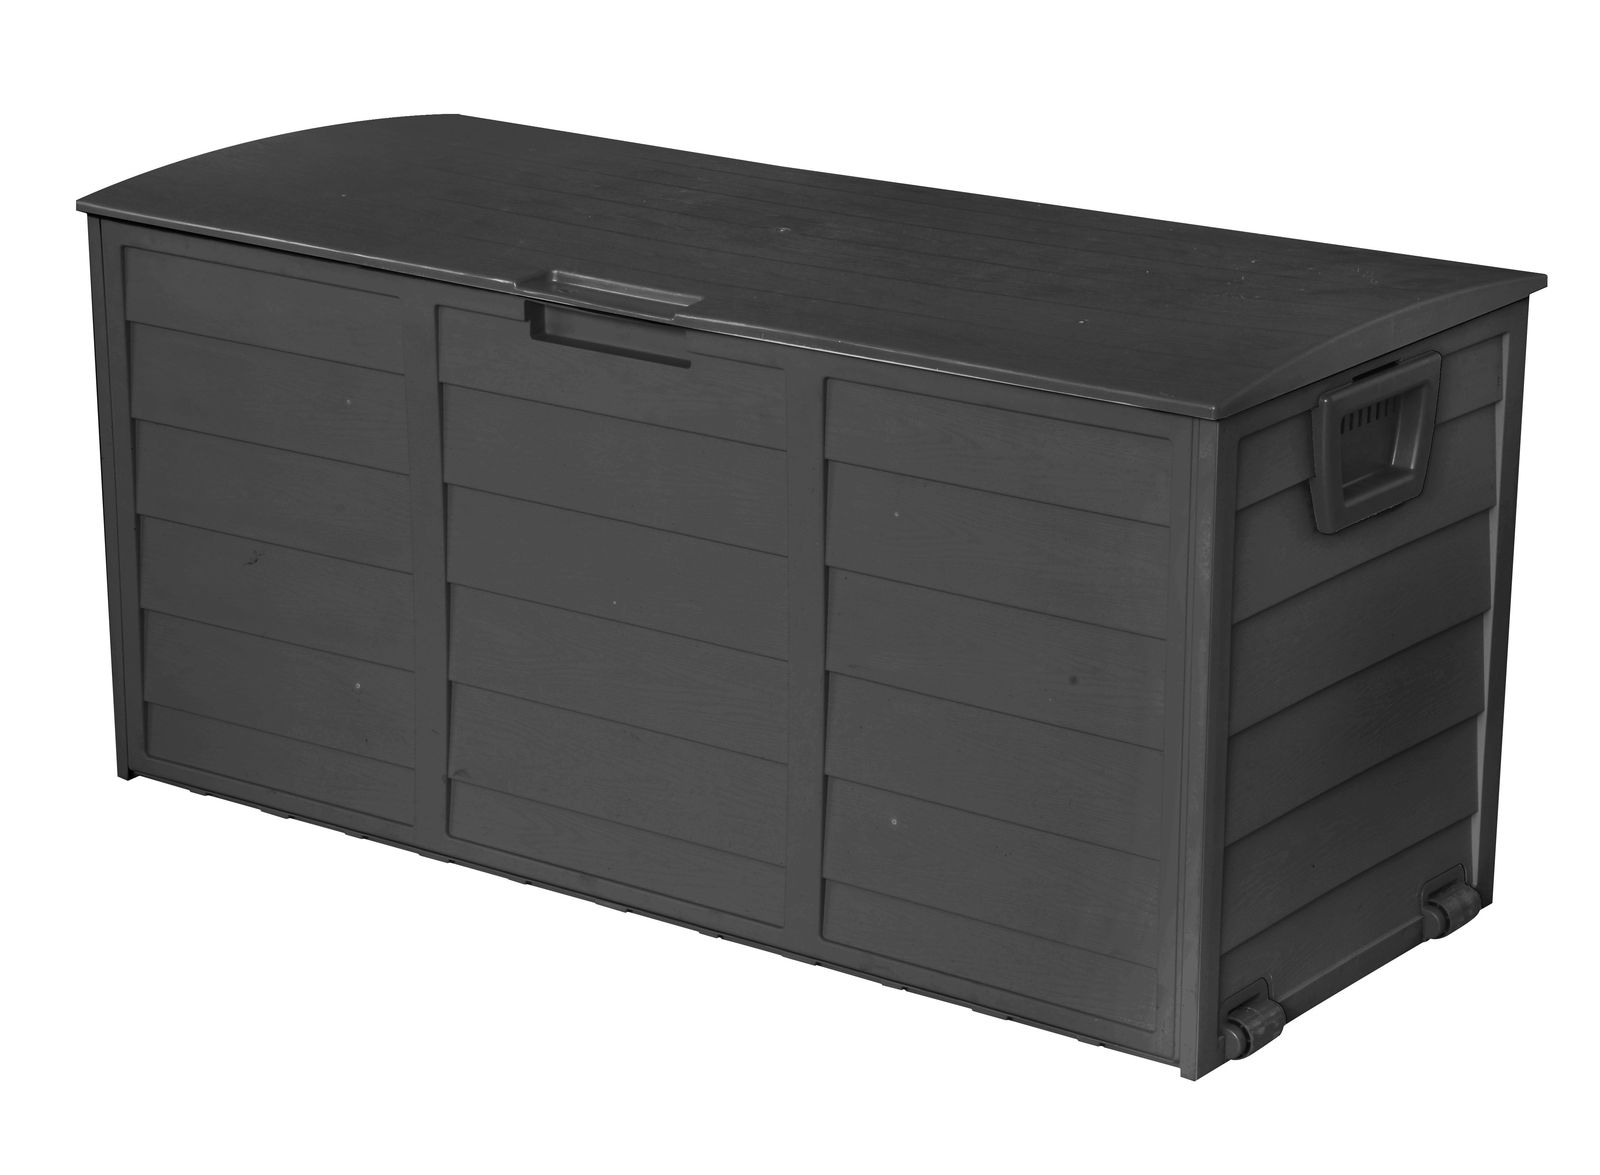 All Black Outdoor Storage Box 290l Large Capacity